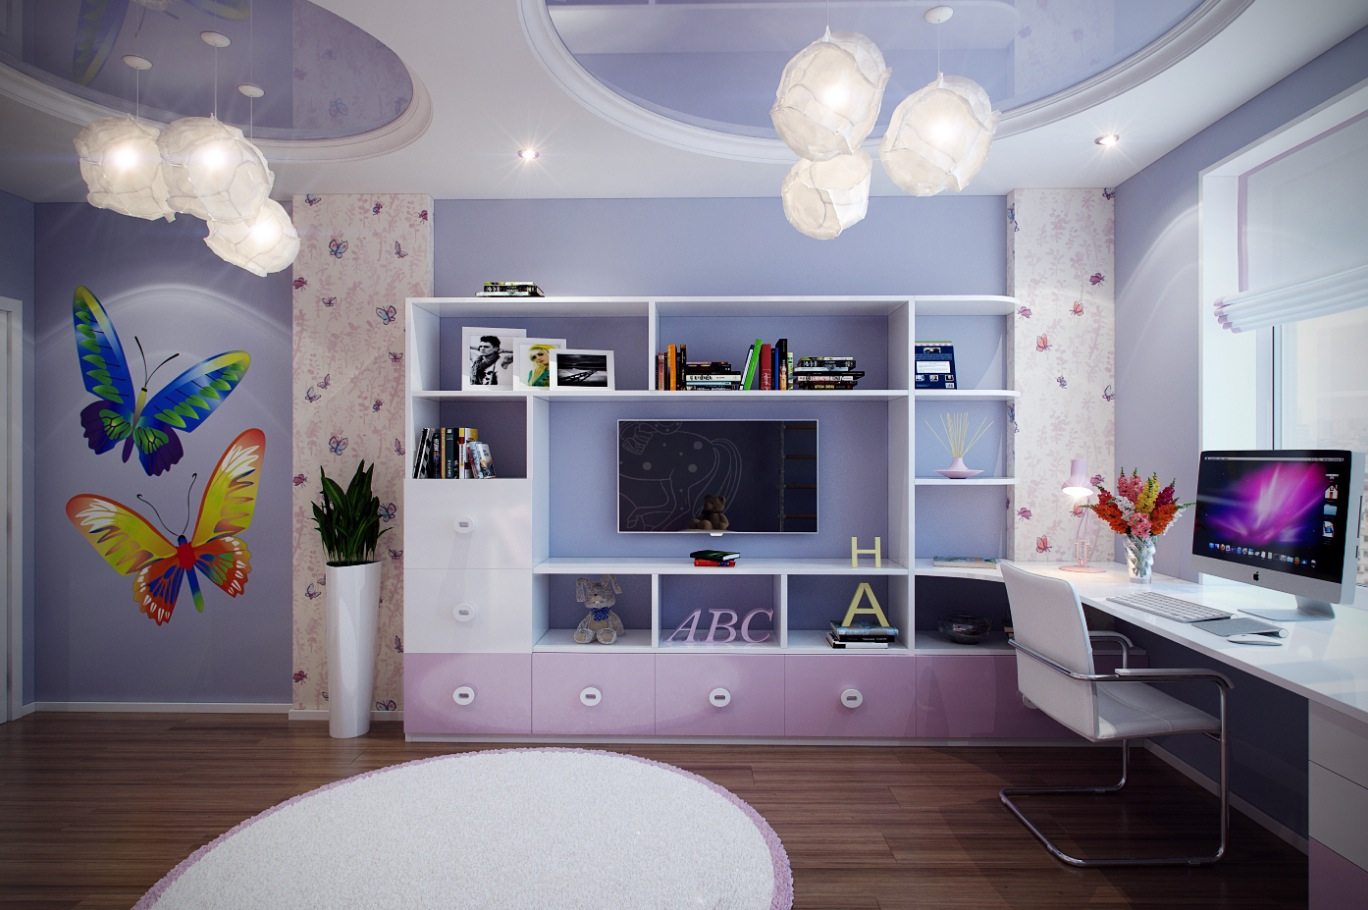 Casting color over kids rooms Modern bedroom ideas for girls